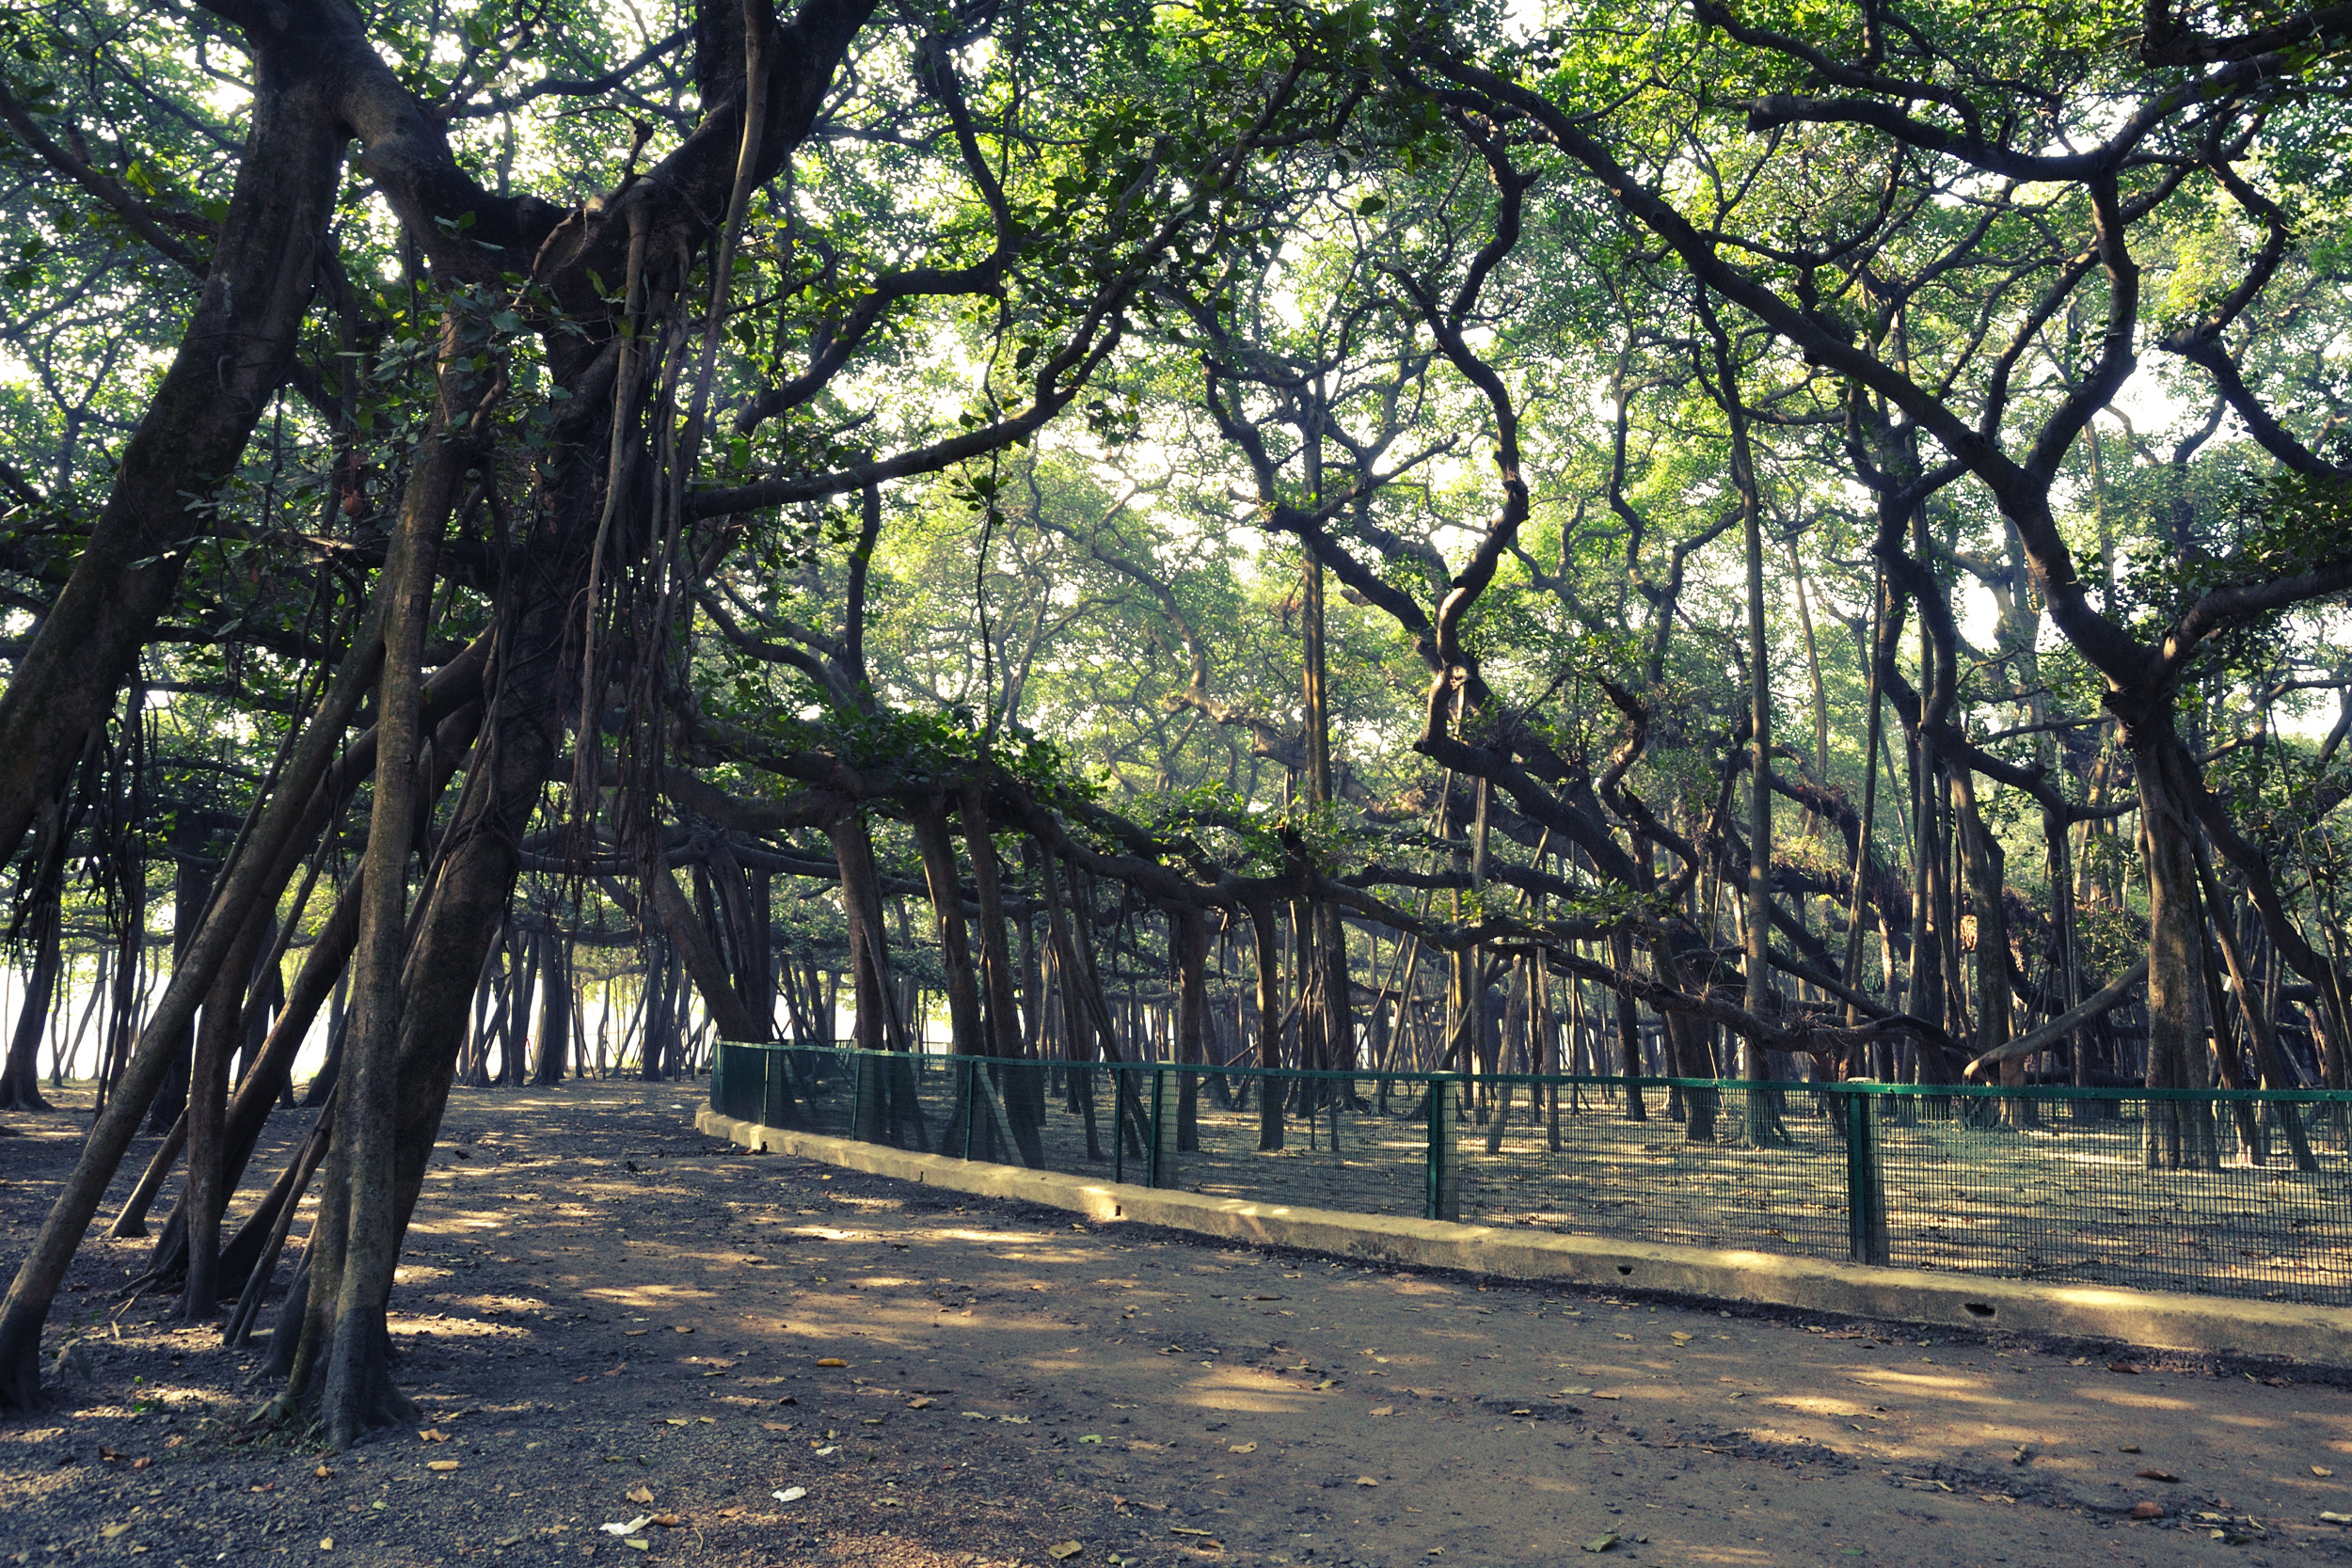 The Great Banyan tree at the Acharya Jagadish Chandra Bose Indian Botanic Garden